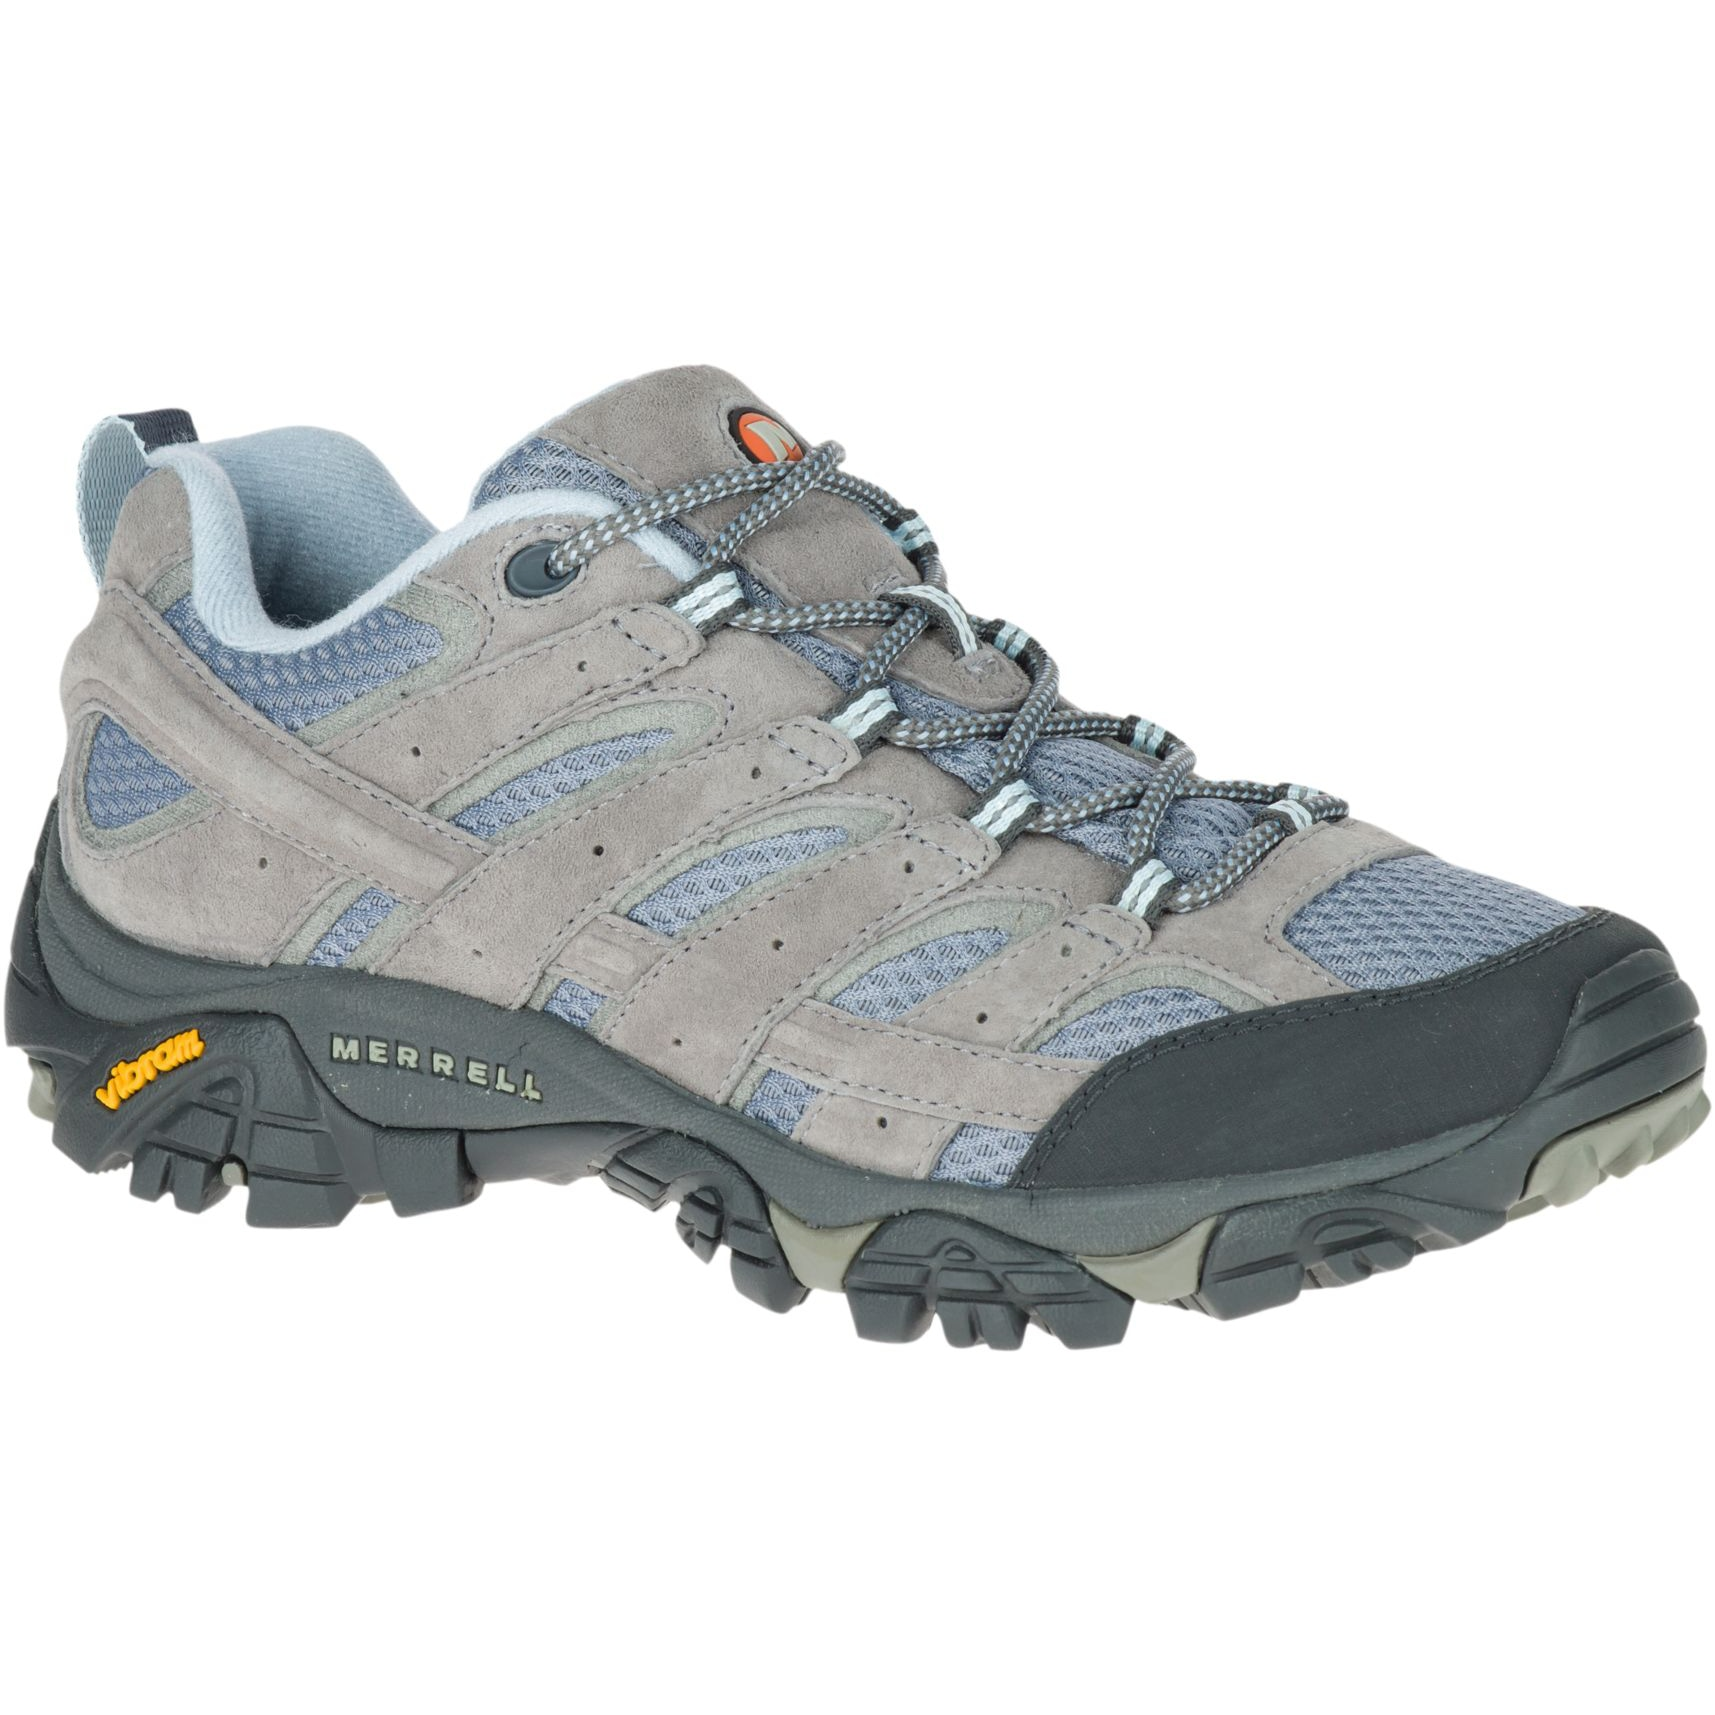 Moab 2 Vent Shoe - Women's